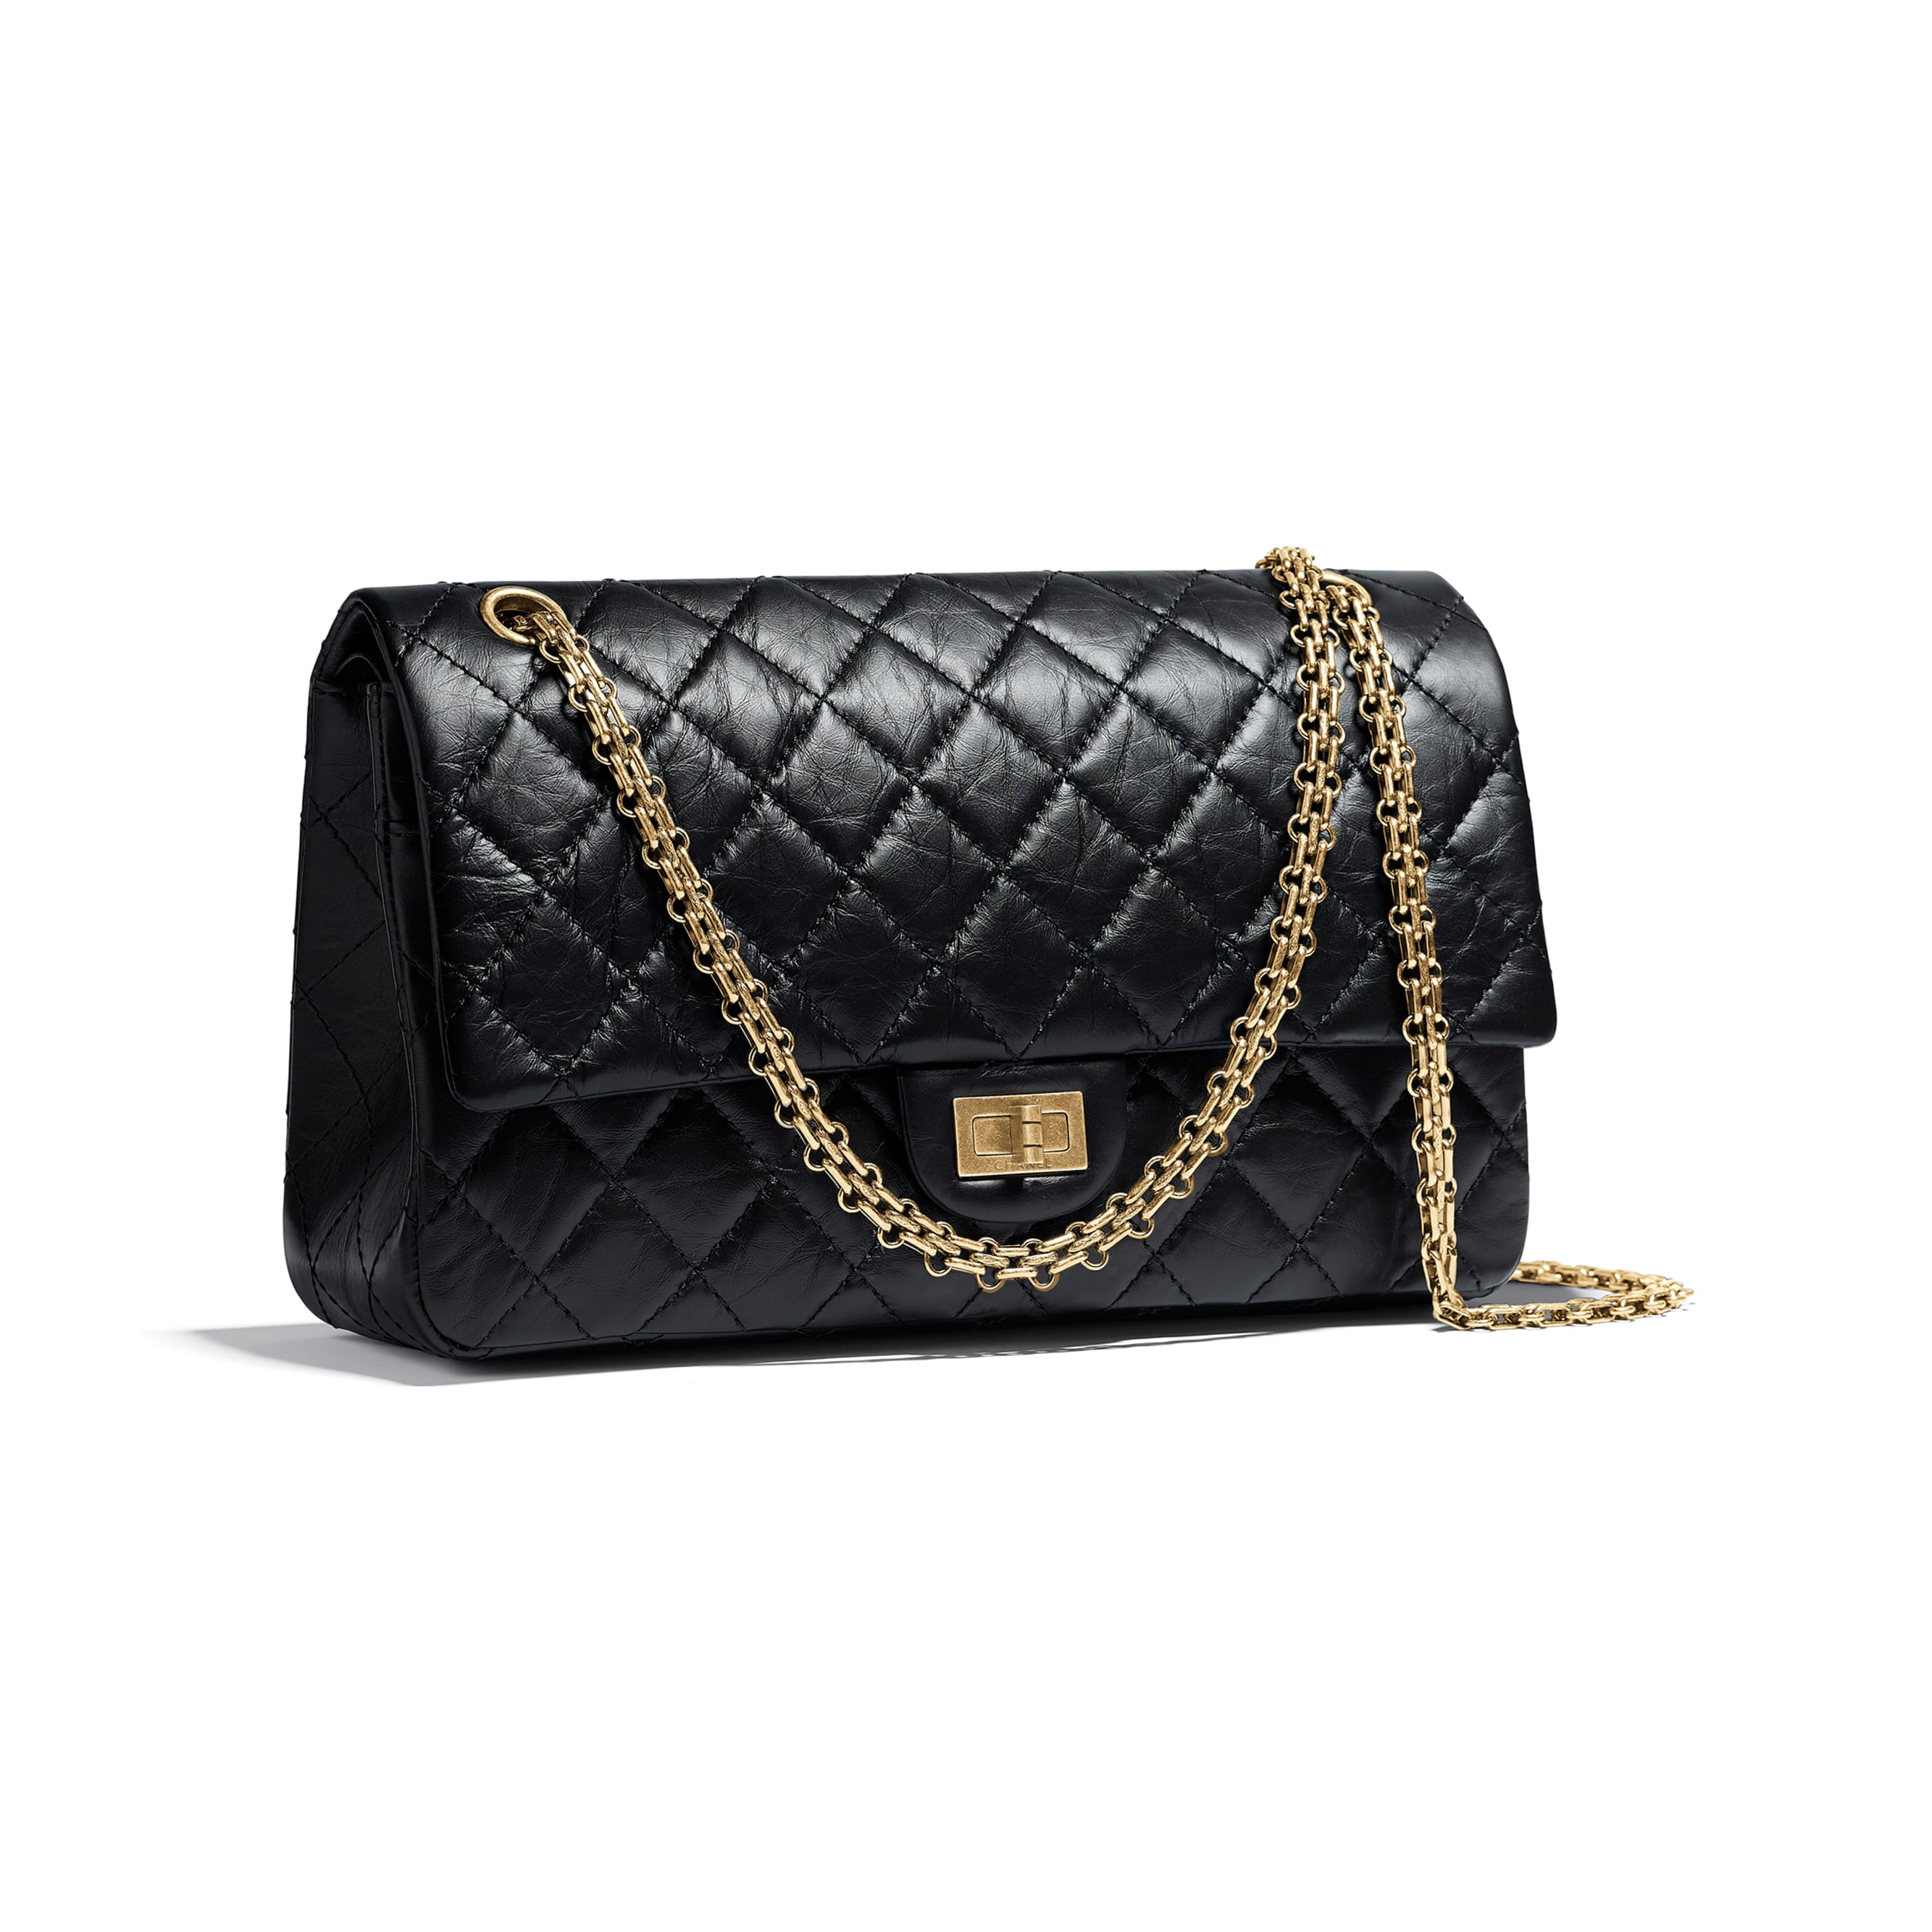 Large 2.55 Handbag - Black - Aged Calfskin & Gold-Tone Metal - CHANEL - Other view - see standard sized version